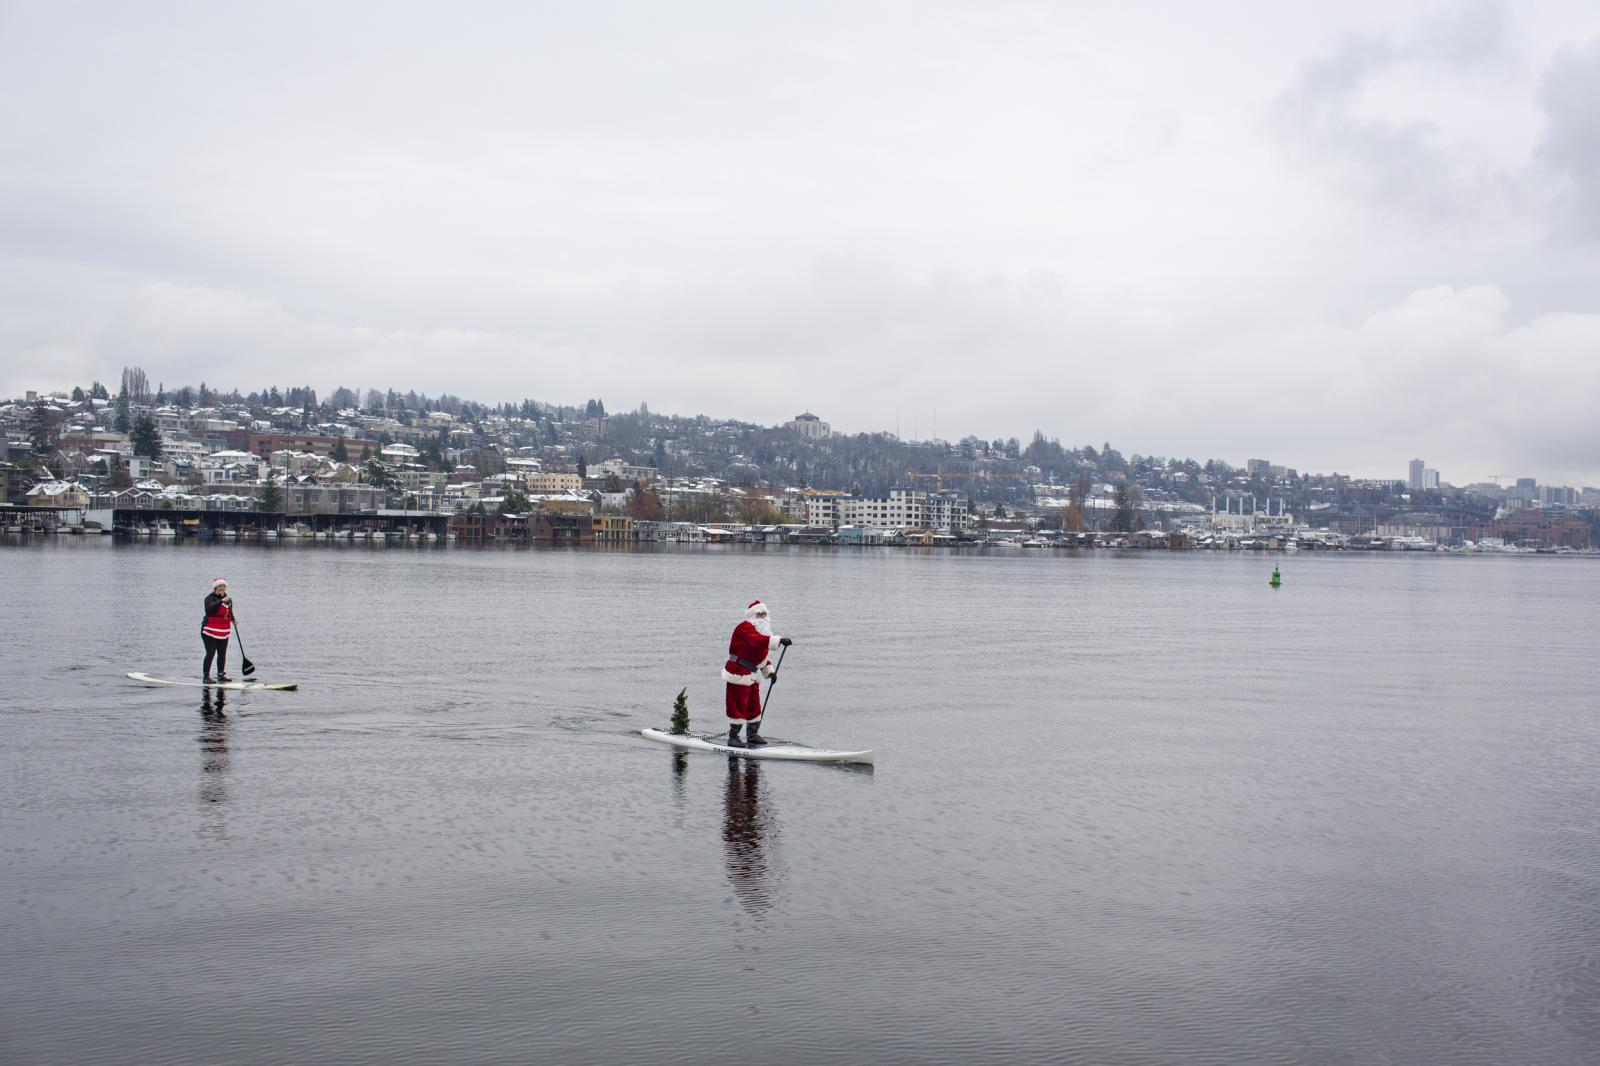 Paddleboard riders dressed as Santa Claus pass Gas Works park at Lake Union in Seattle on Dec. 25, 2017.